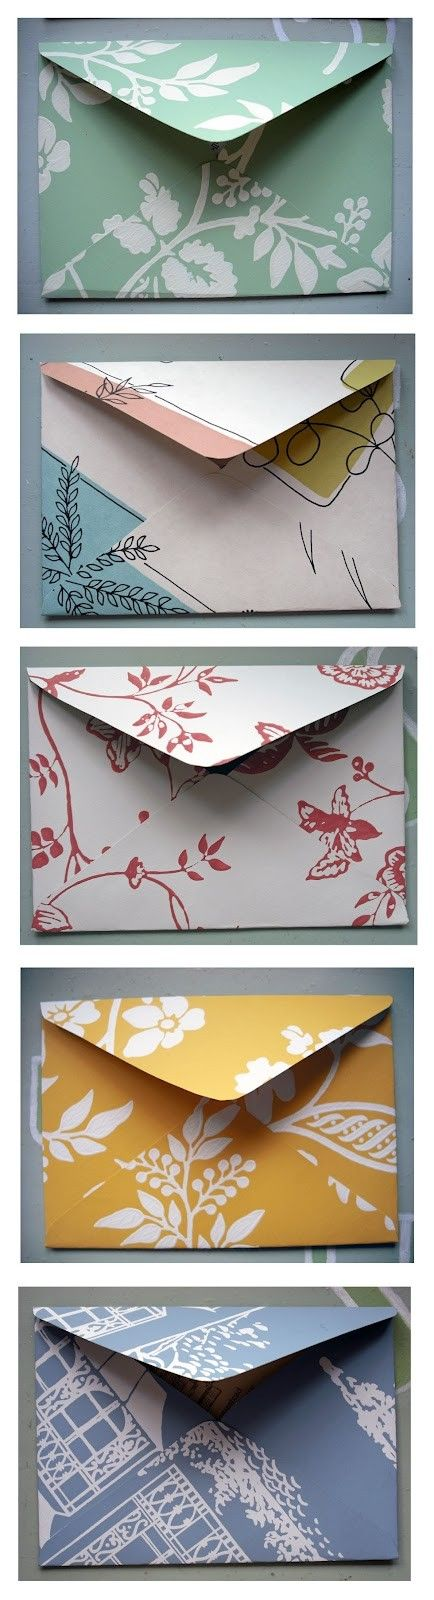 How to make envelopes from scrapbook paper. - Cute! And easy enough that I feel like even I could do this